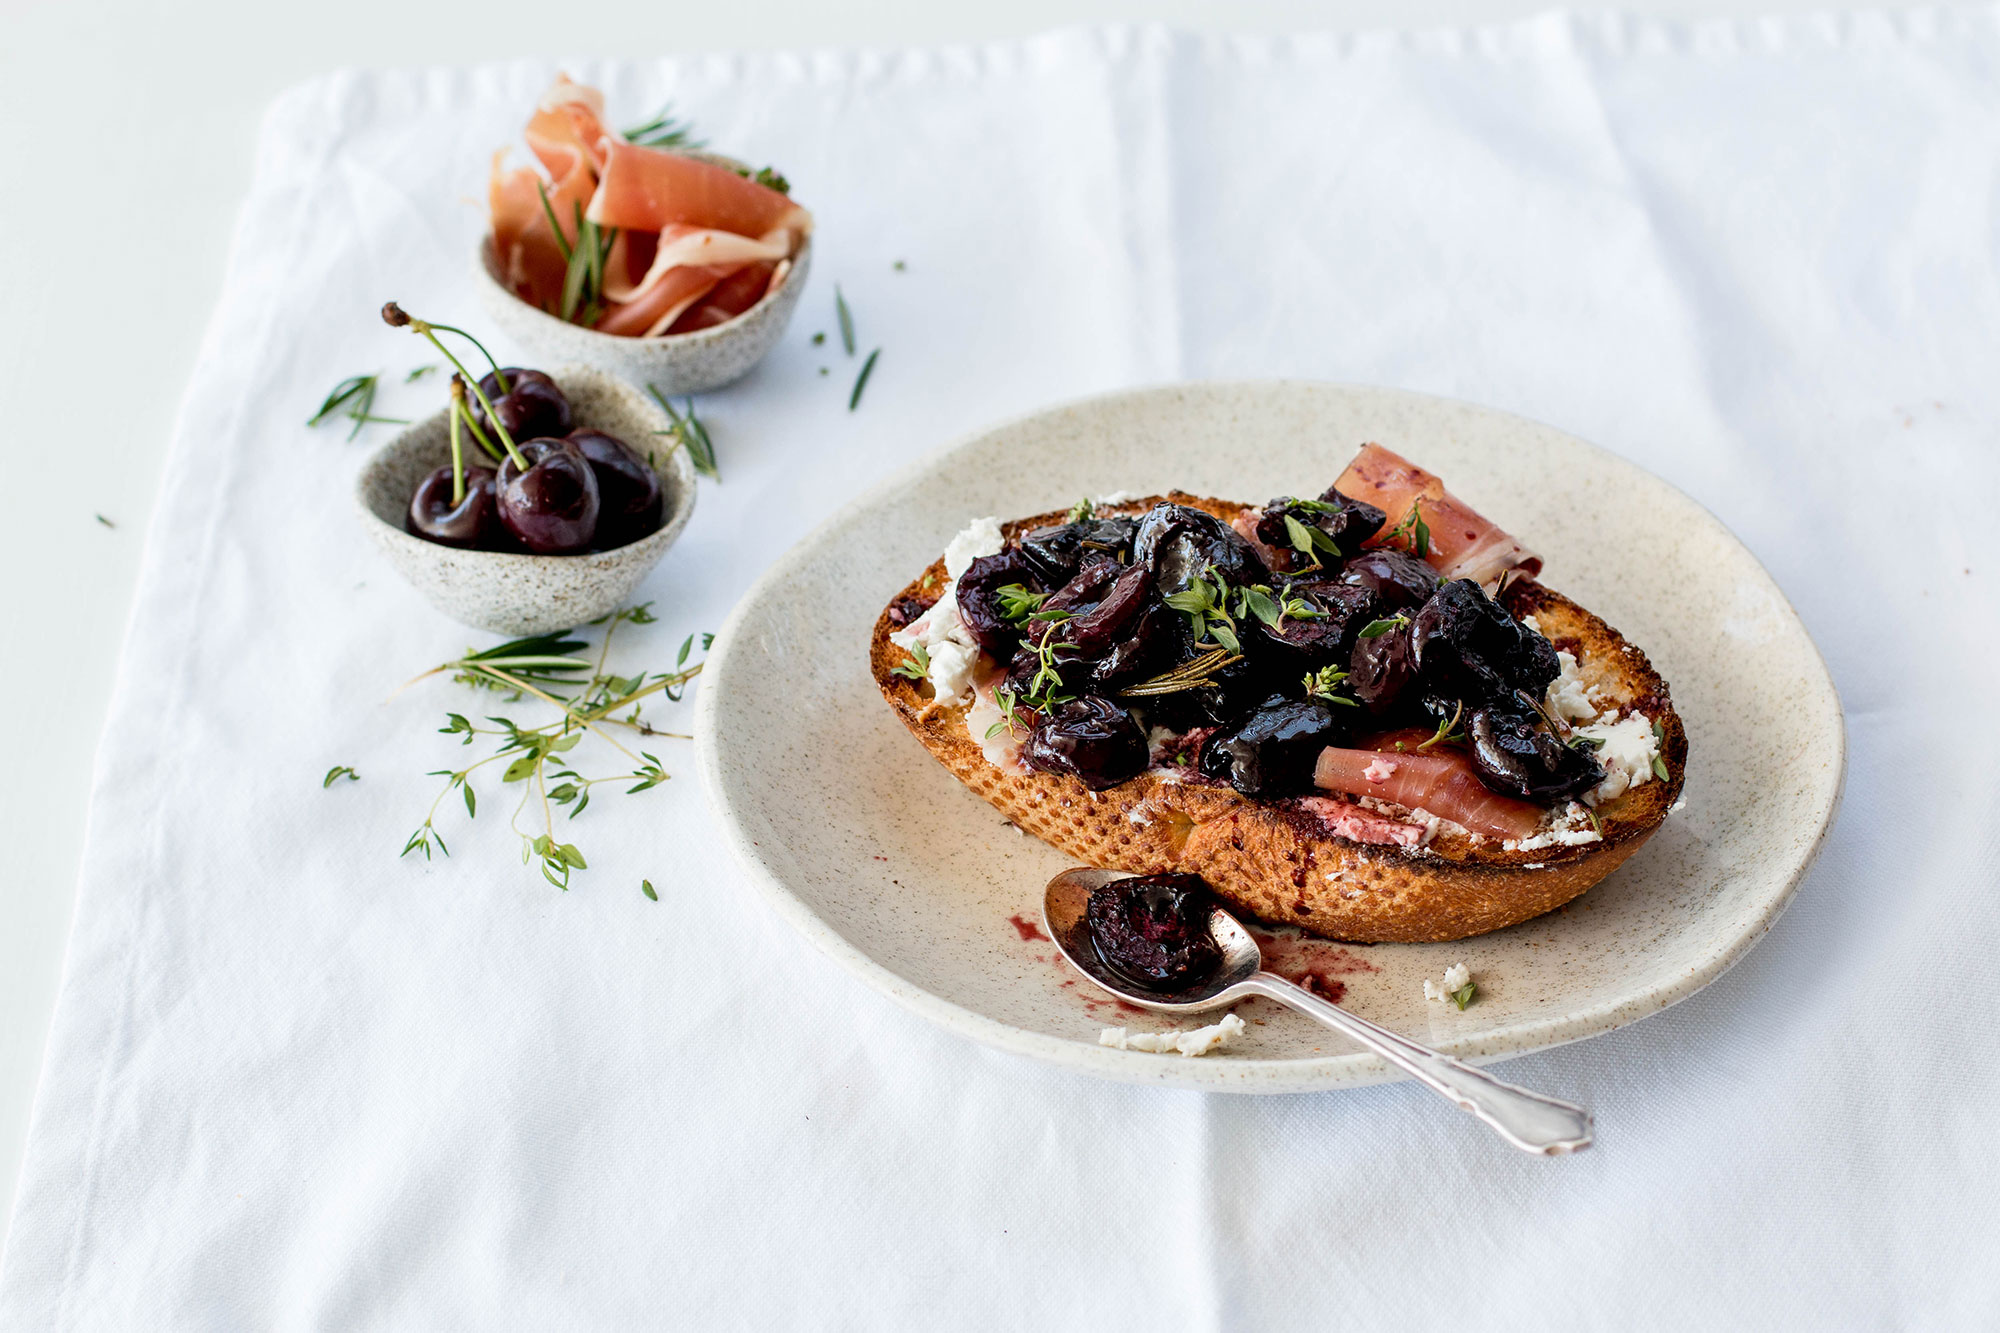 Roast-Balsamic-Cherry-&-Goats-Cheese-Bruschetta-4.jpg